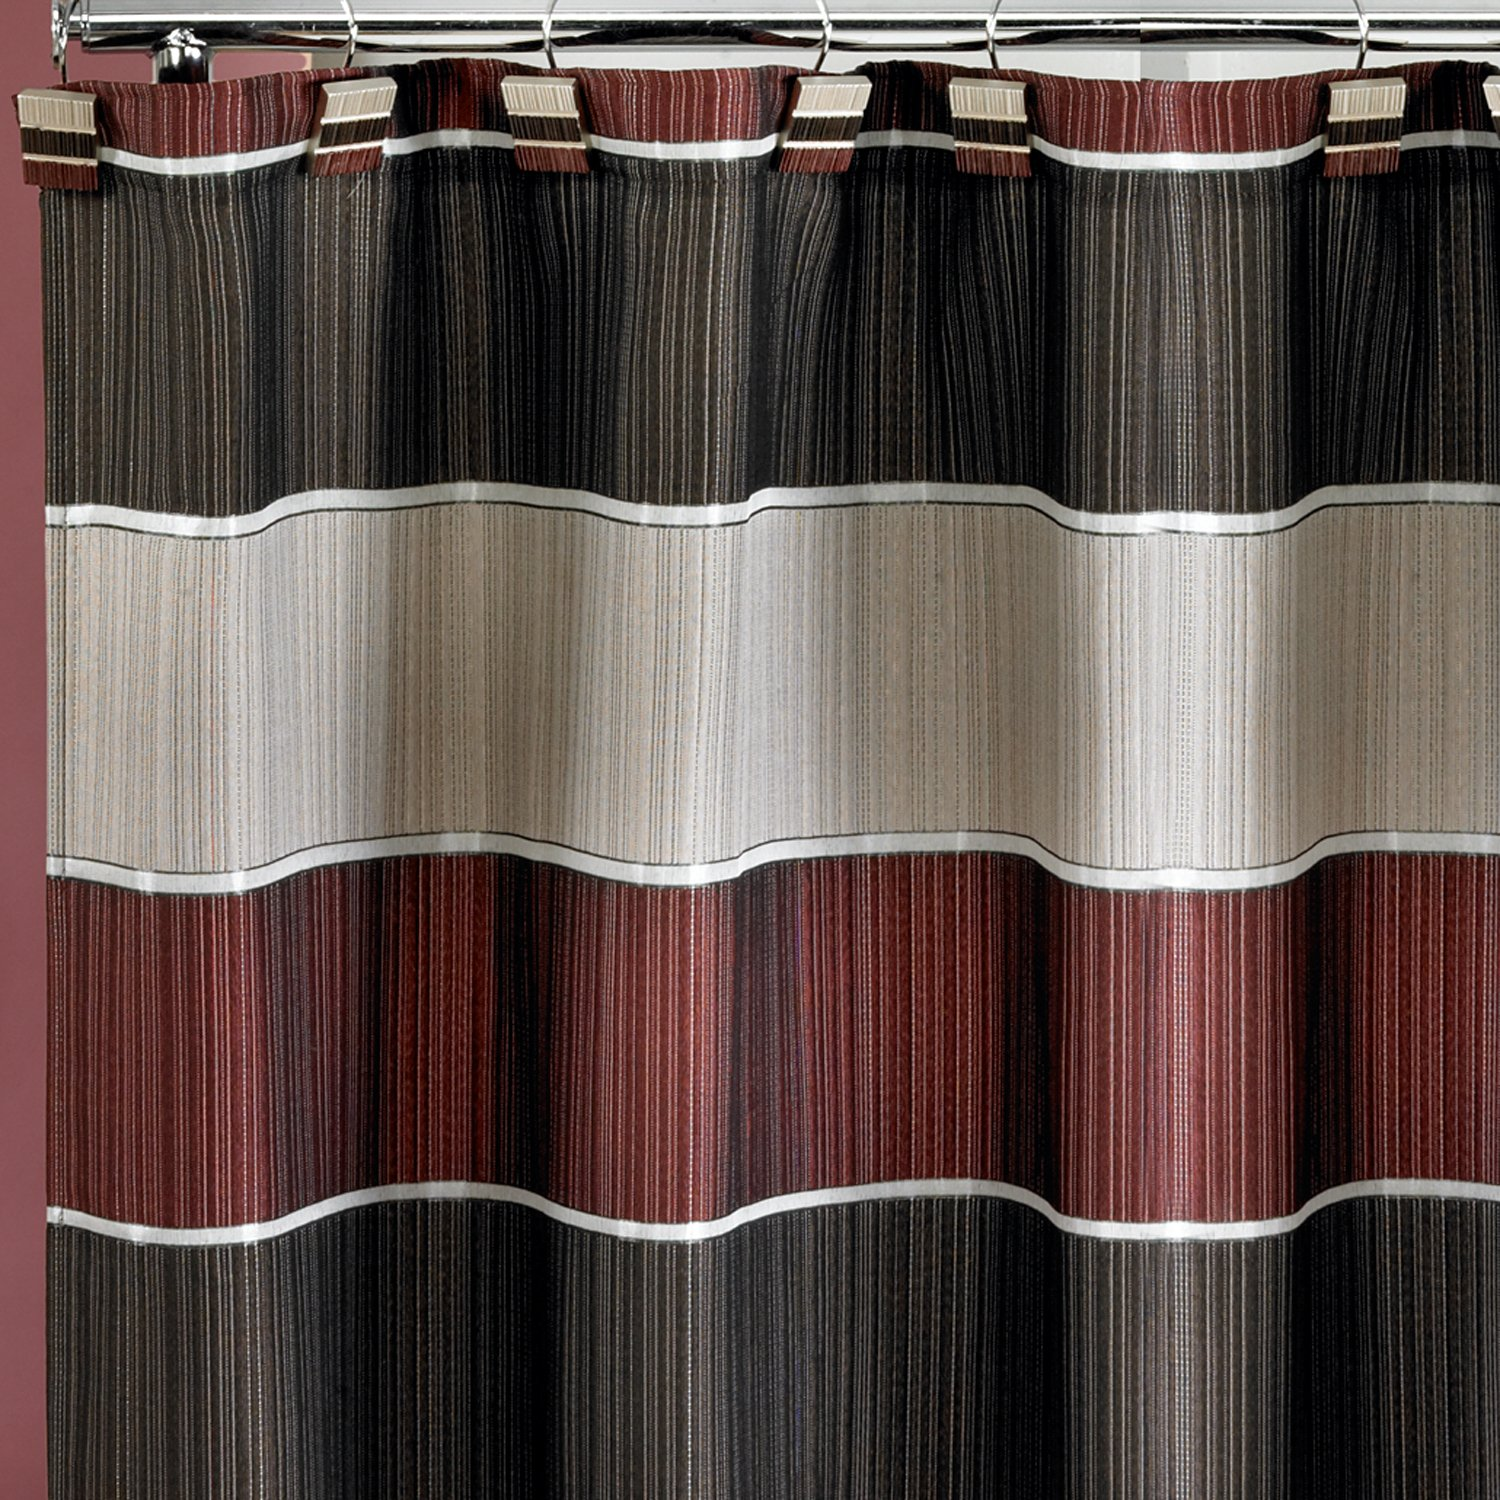 Merveilleux Amazon.com: Popular Home The Modern Line Collection Fabric Shower Curtain,  Burgundy: Home U0026 Kitchen